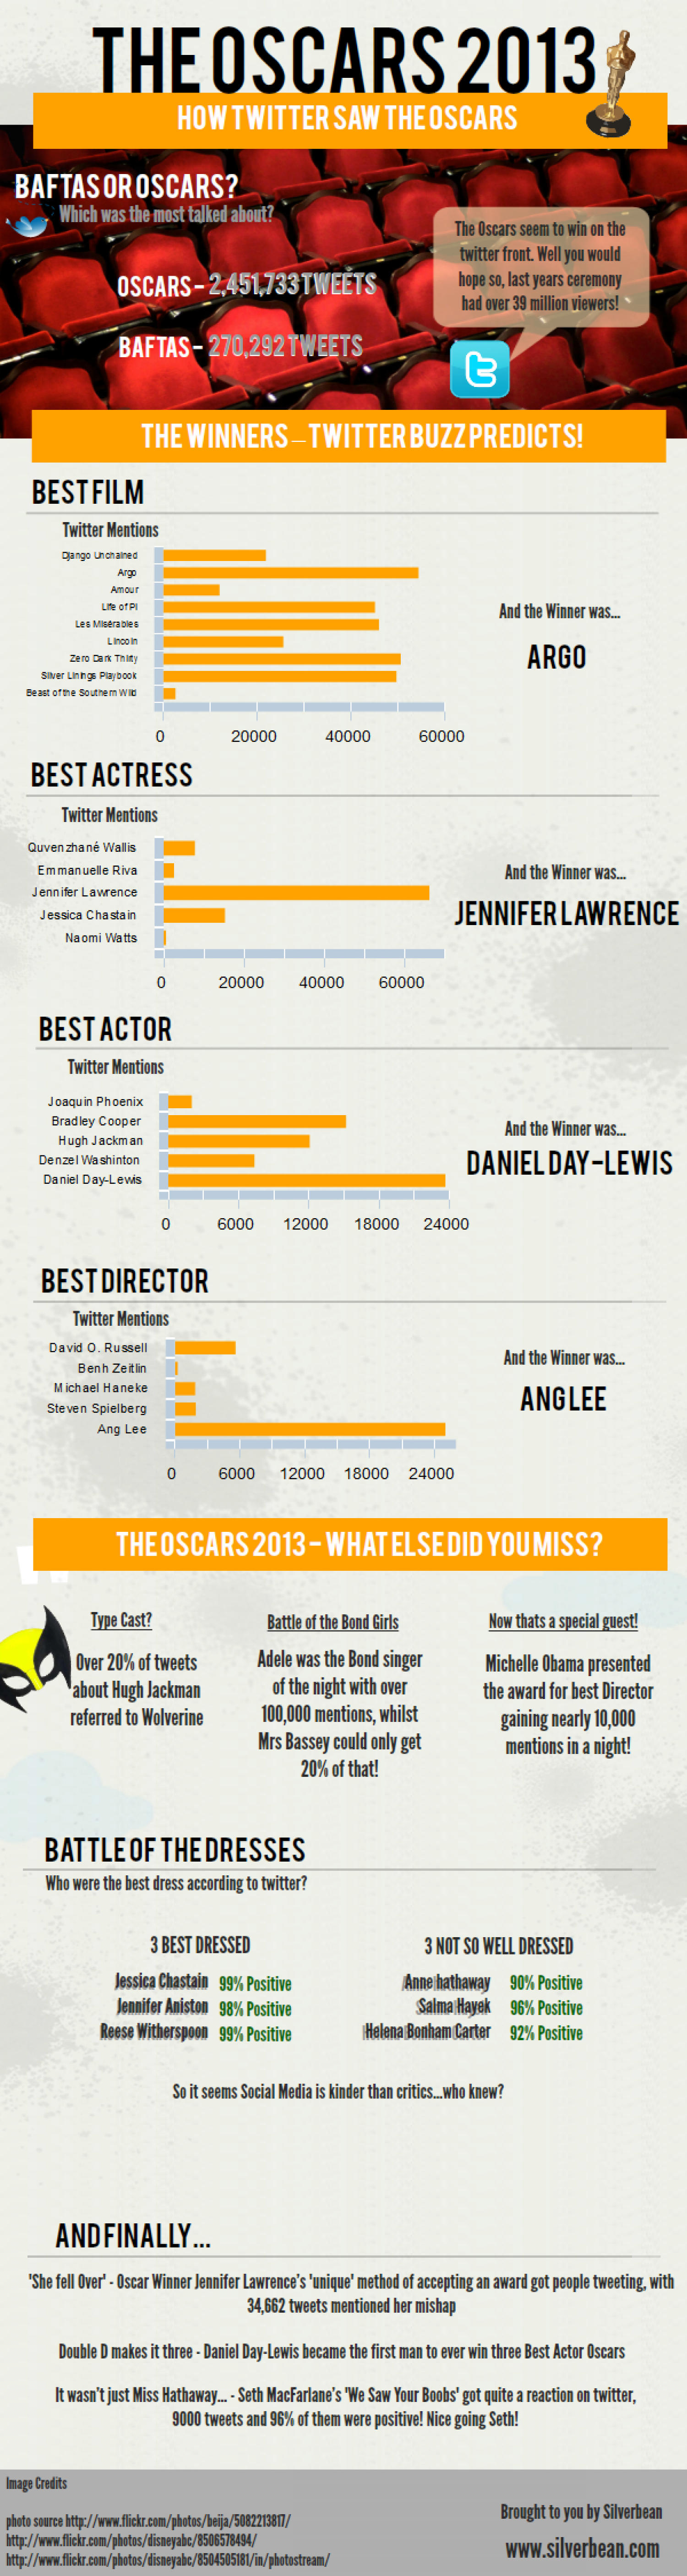 The Oscars 2013 - How twitter saw the Oscars 2013 Infographic